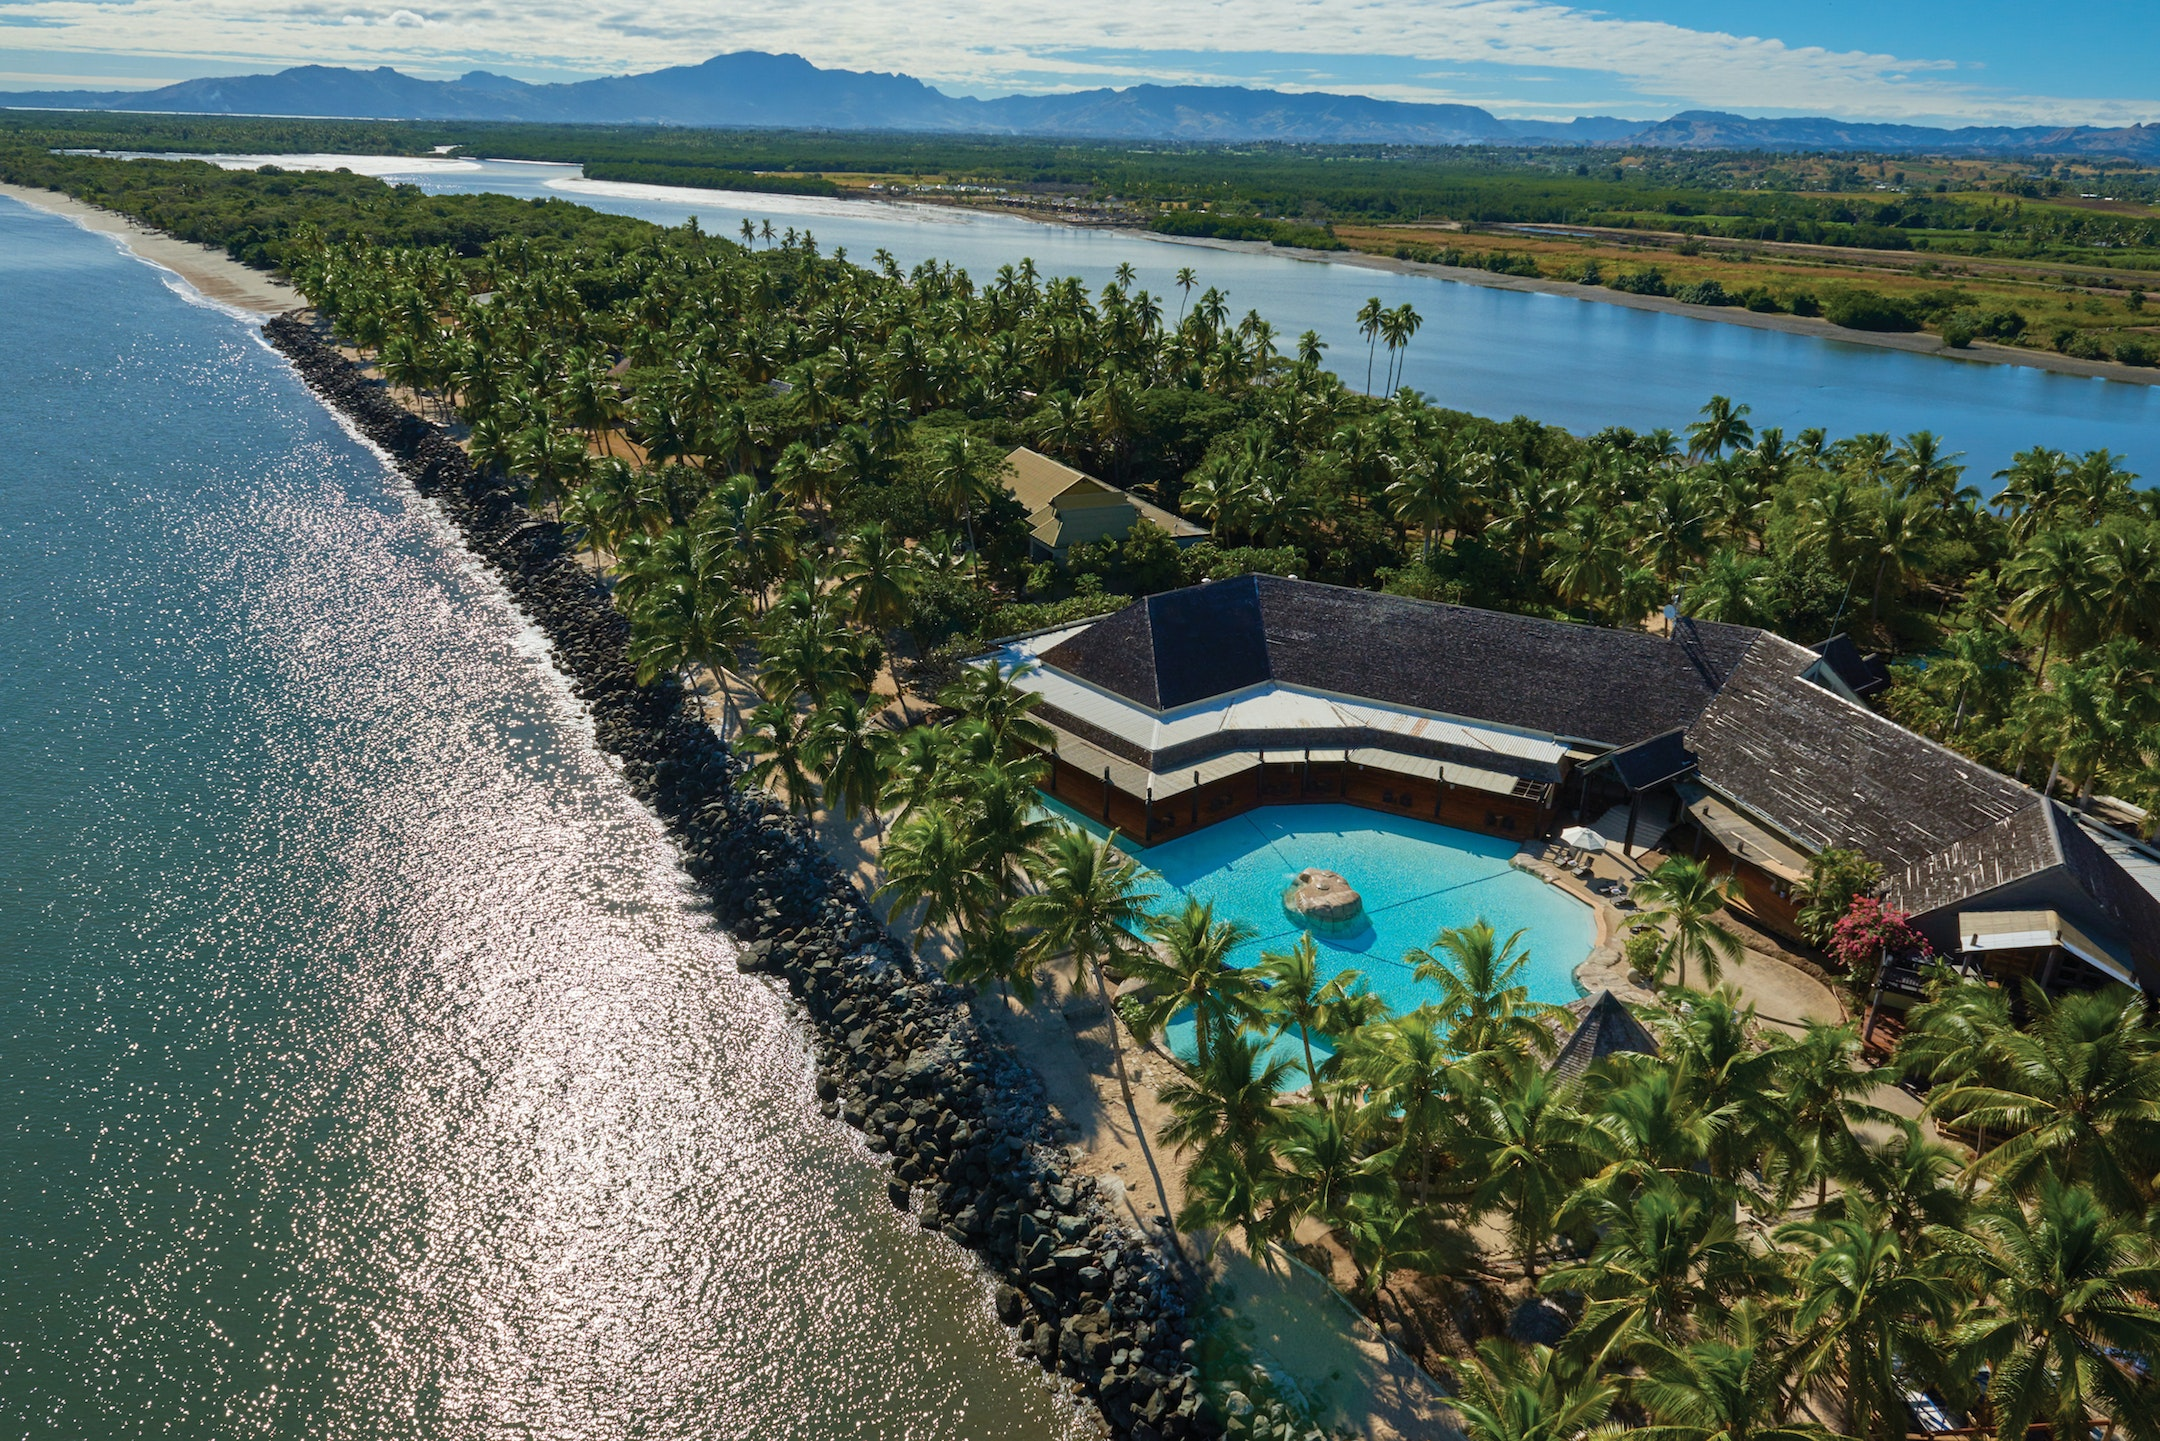 The DoubleTree Resort by Hilton Hotel Fiji–Sonaisali Island is located on a private island.